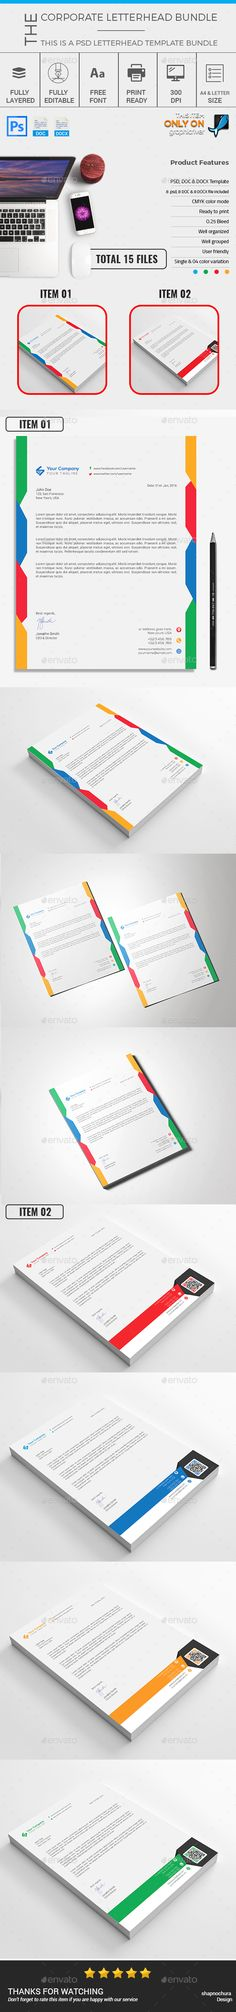 Letterhead PSD Bundle Template u2022 Only available here ➝   - letterhead samples word